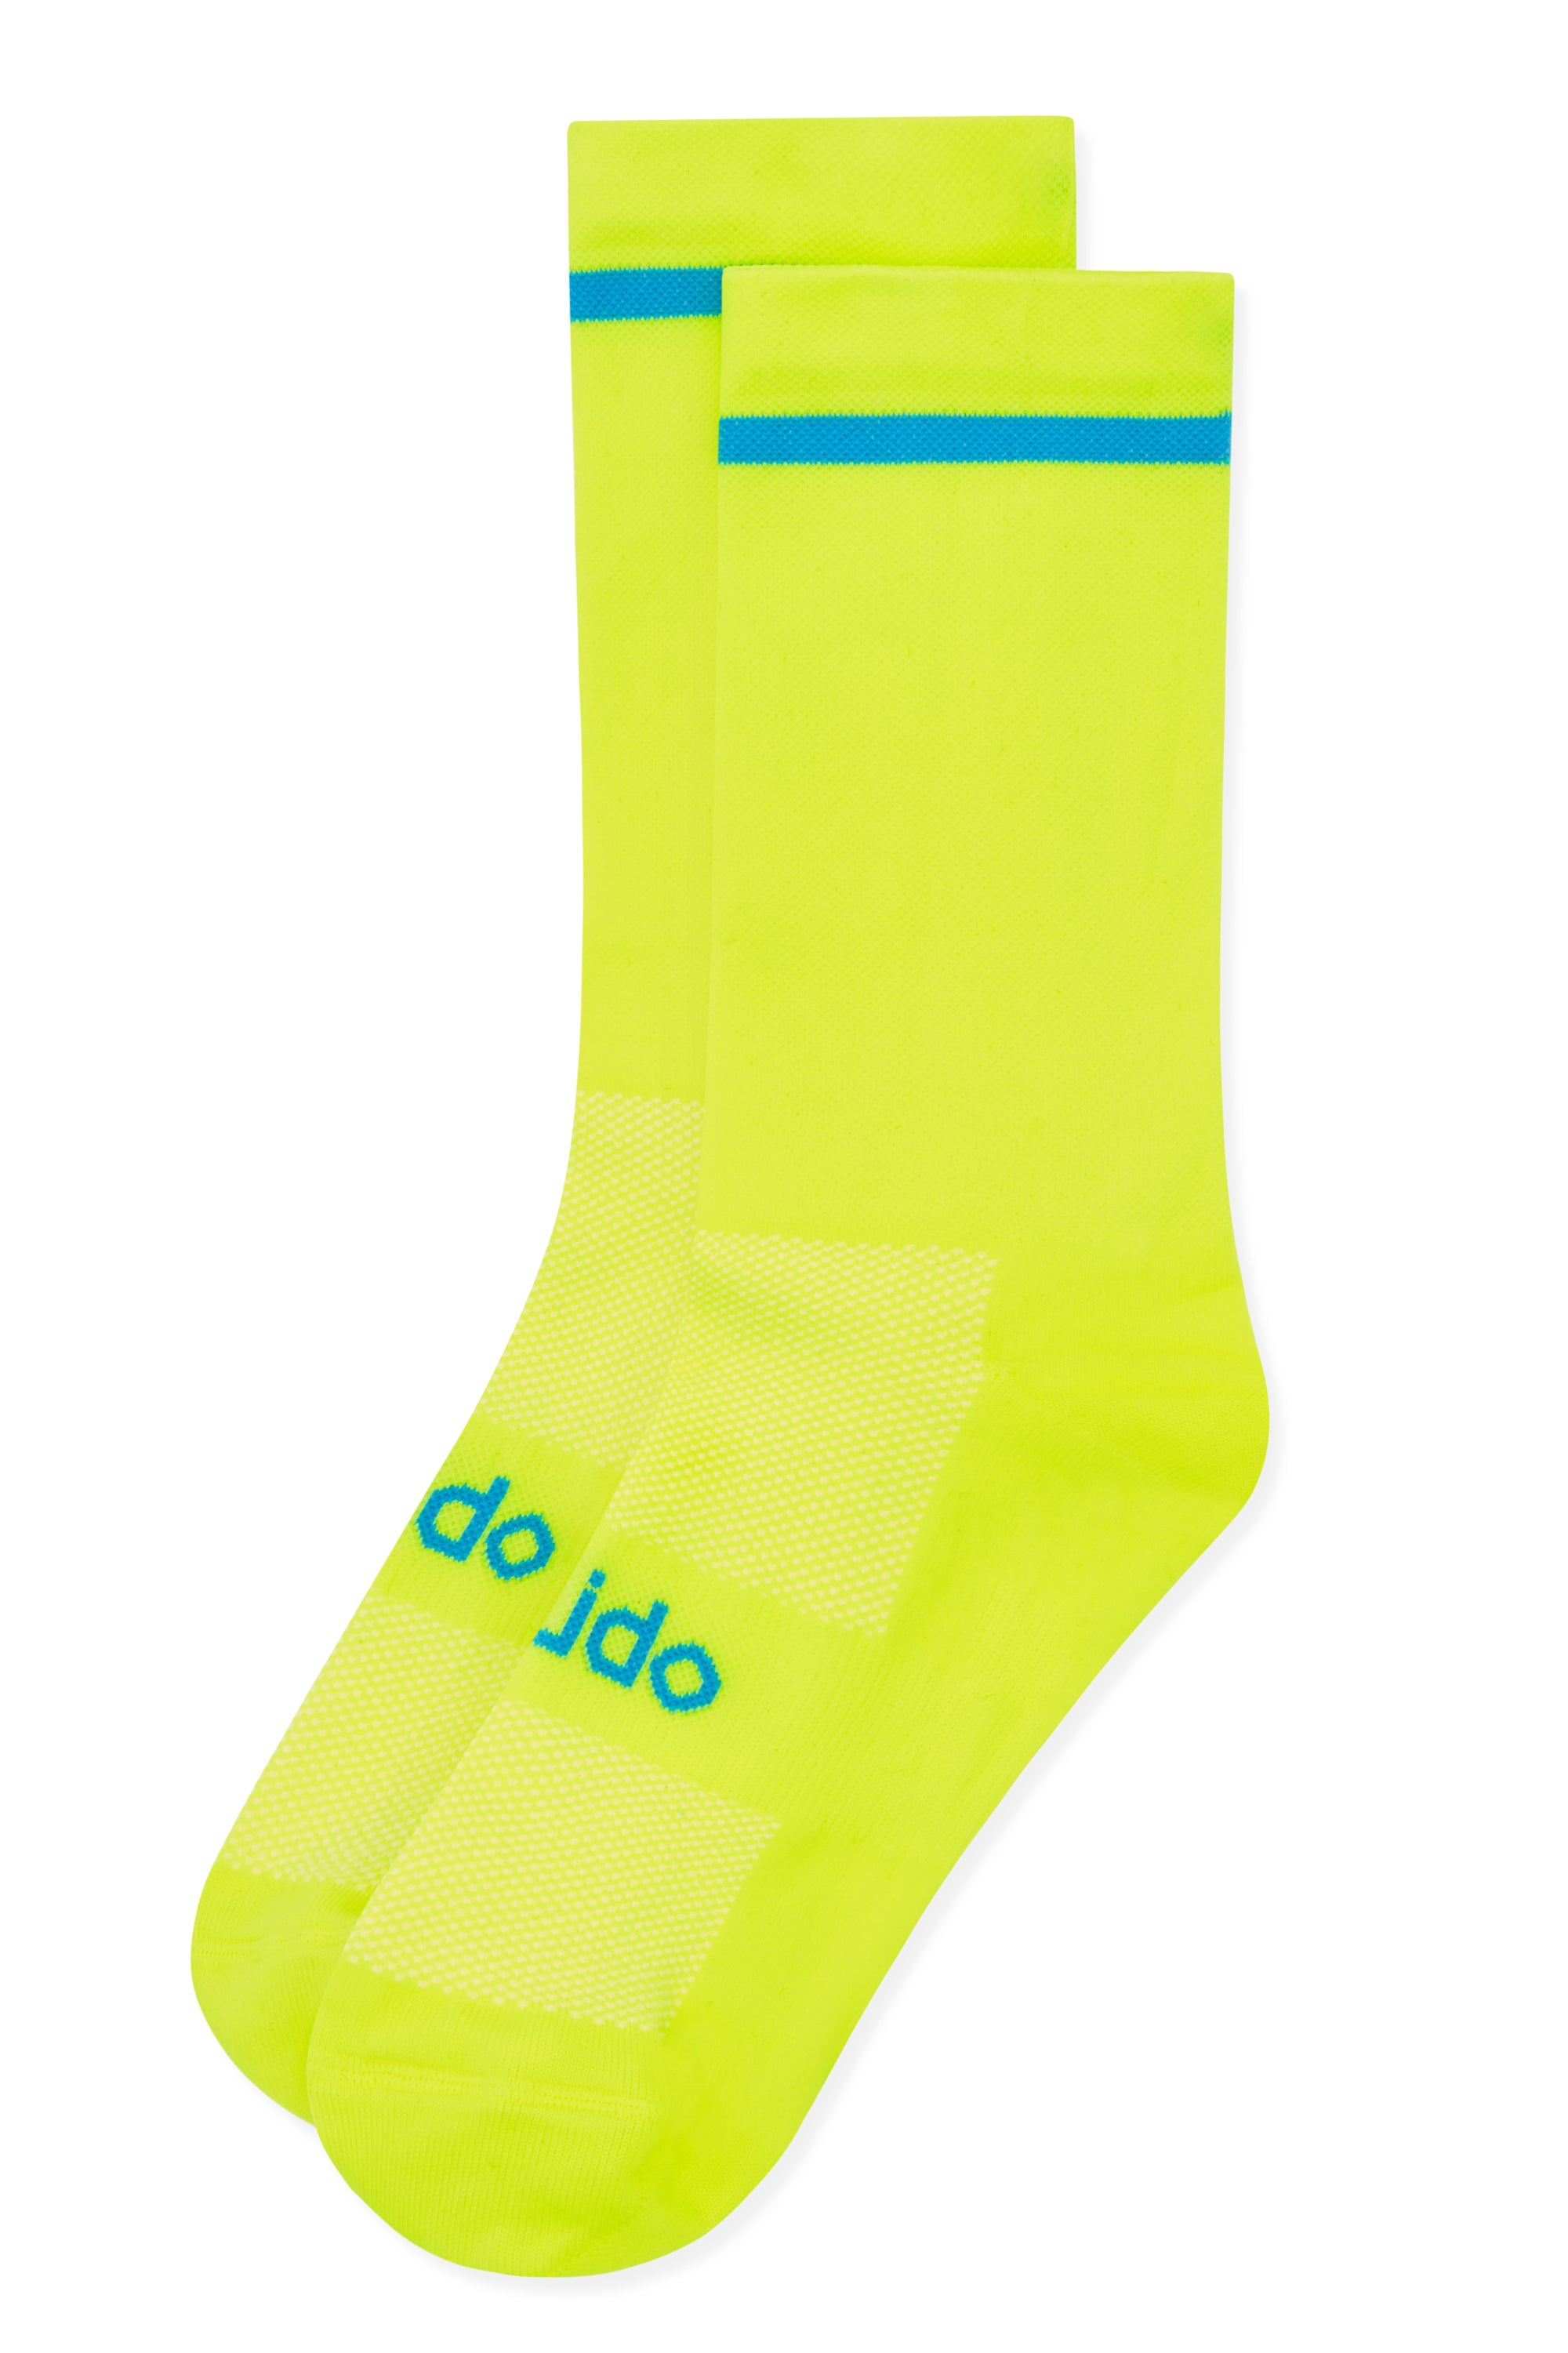 Pongo cycling socks London